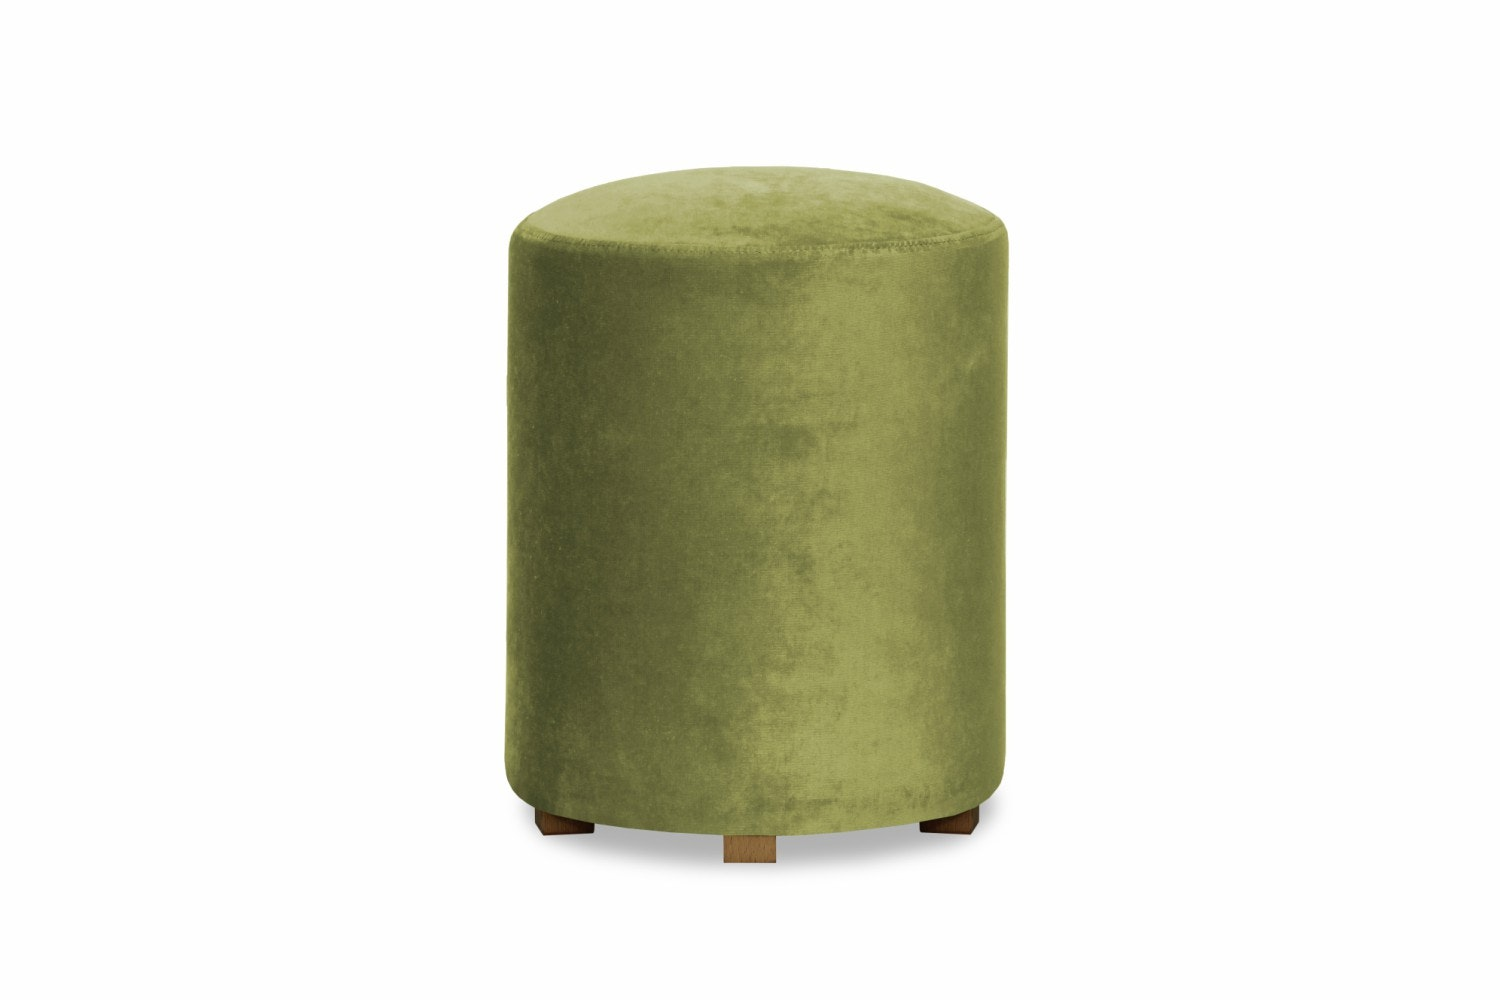 Pufa Bedroom Round Stool | Green